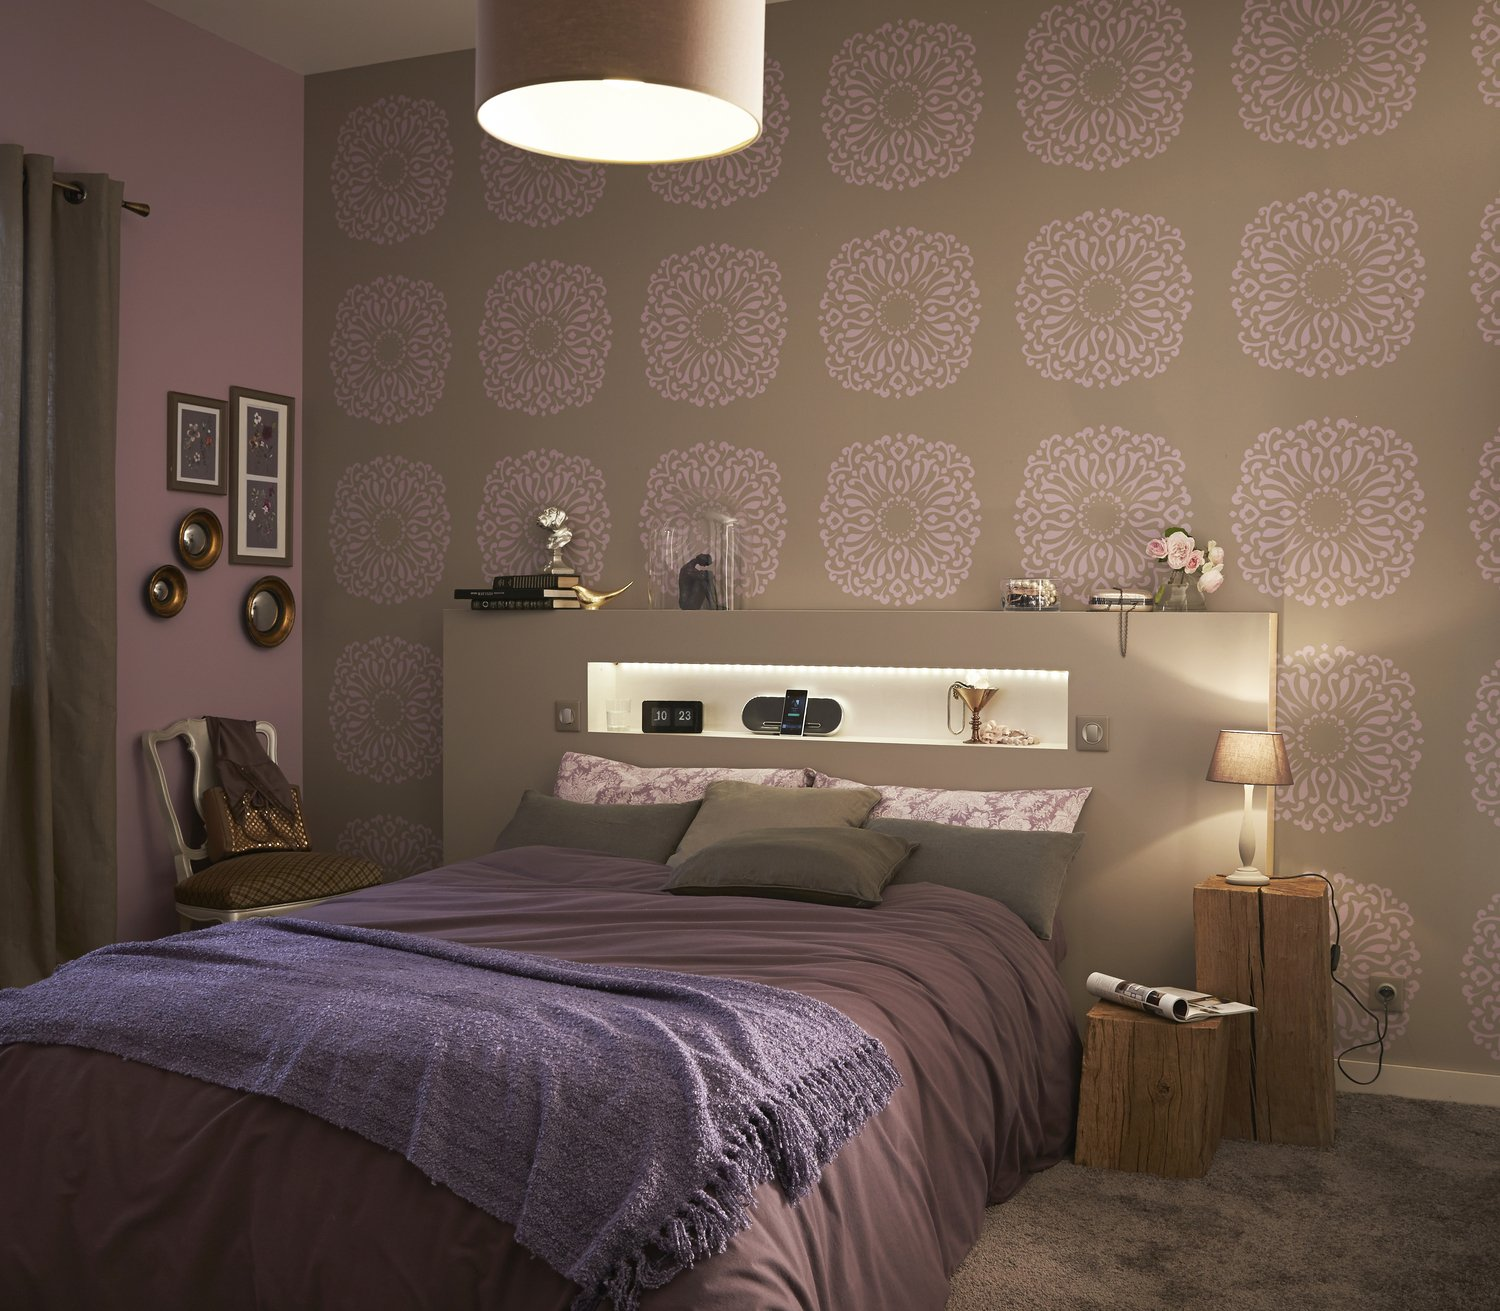 une chambre romantique et design aux tons taupe et parme leroy merlin. Black Bedroom Furniture Sets. Home Design Ideas